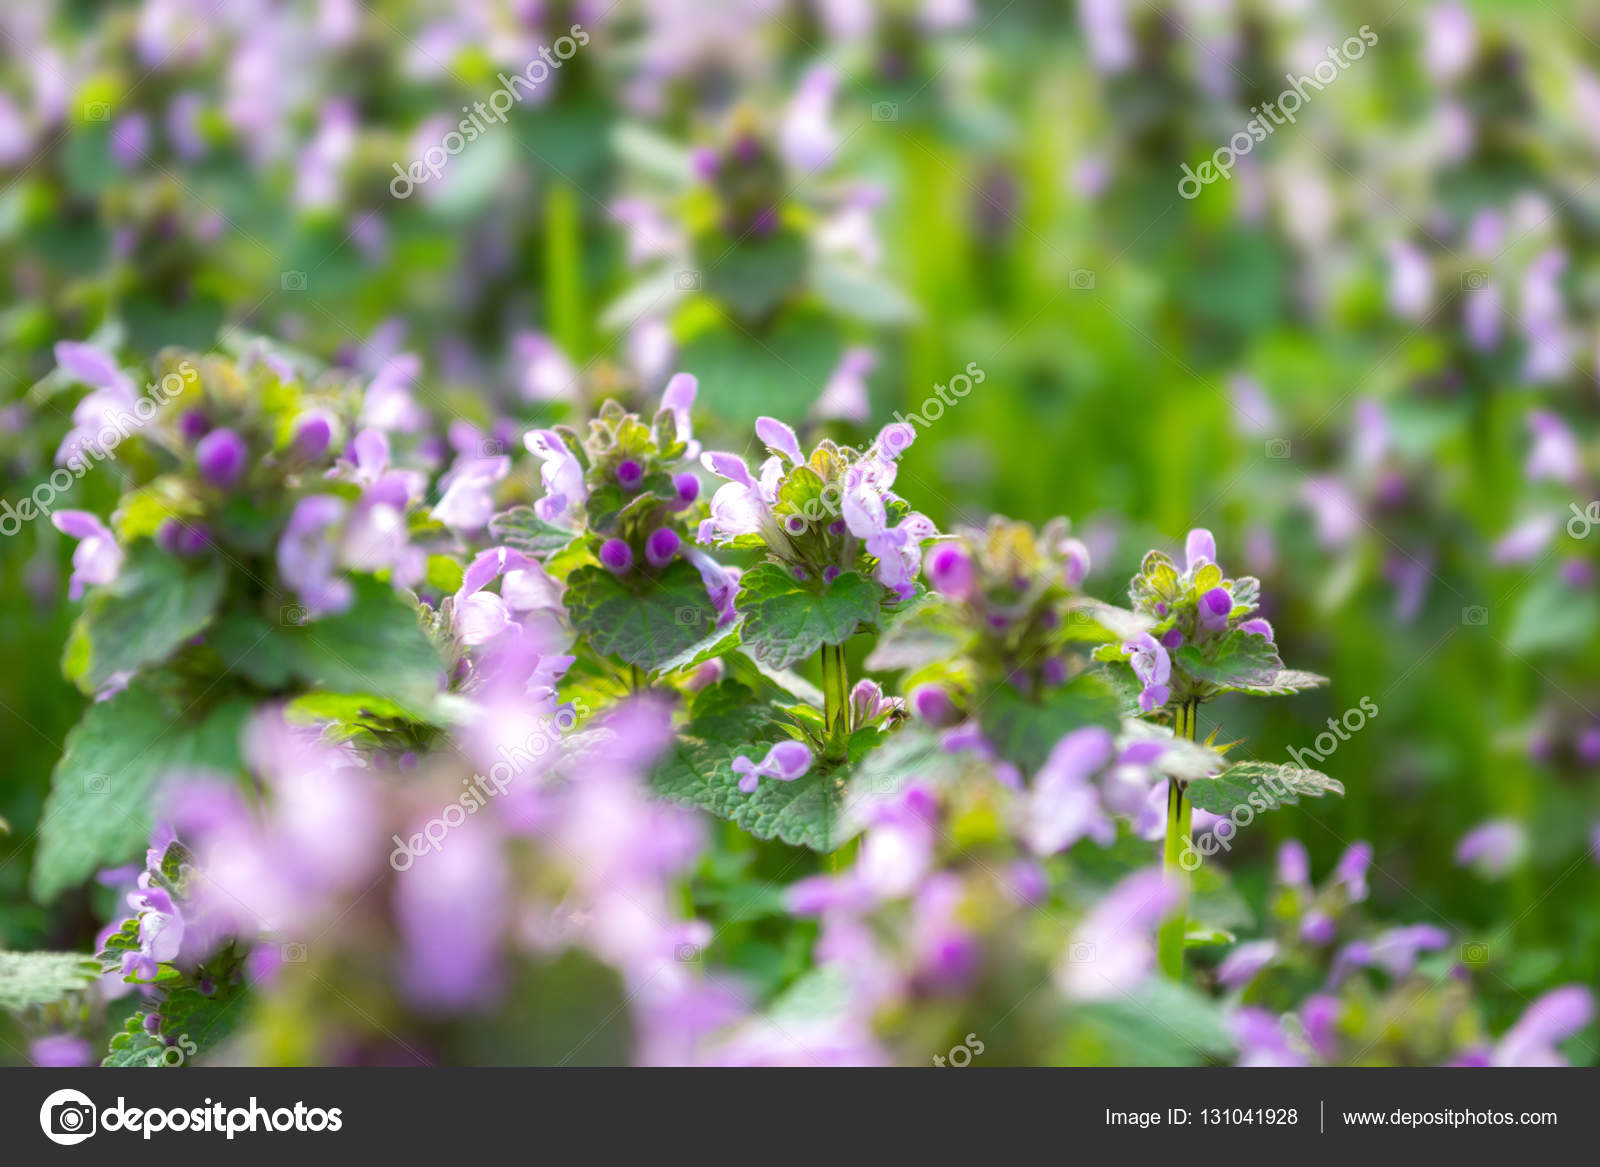 Small spring flowers pink spring flowers flowers on the meadow small spring flowers pink spring flowers flowers on the meadow stock photo mightylinksfo